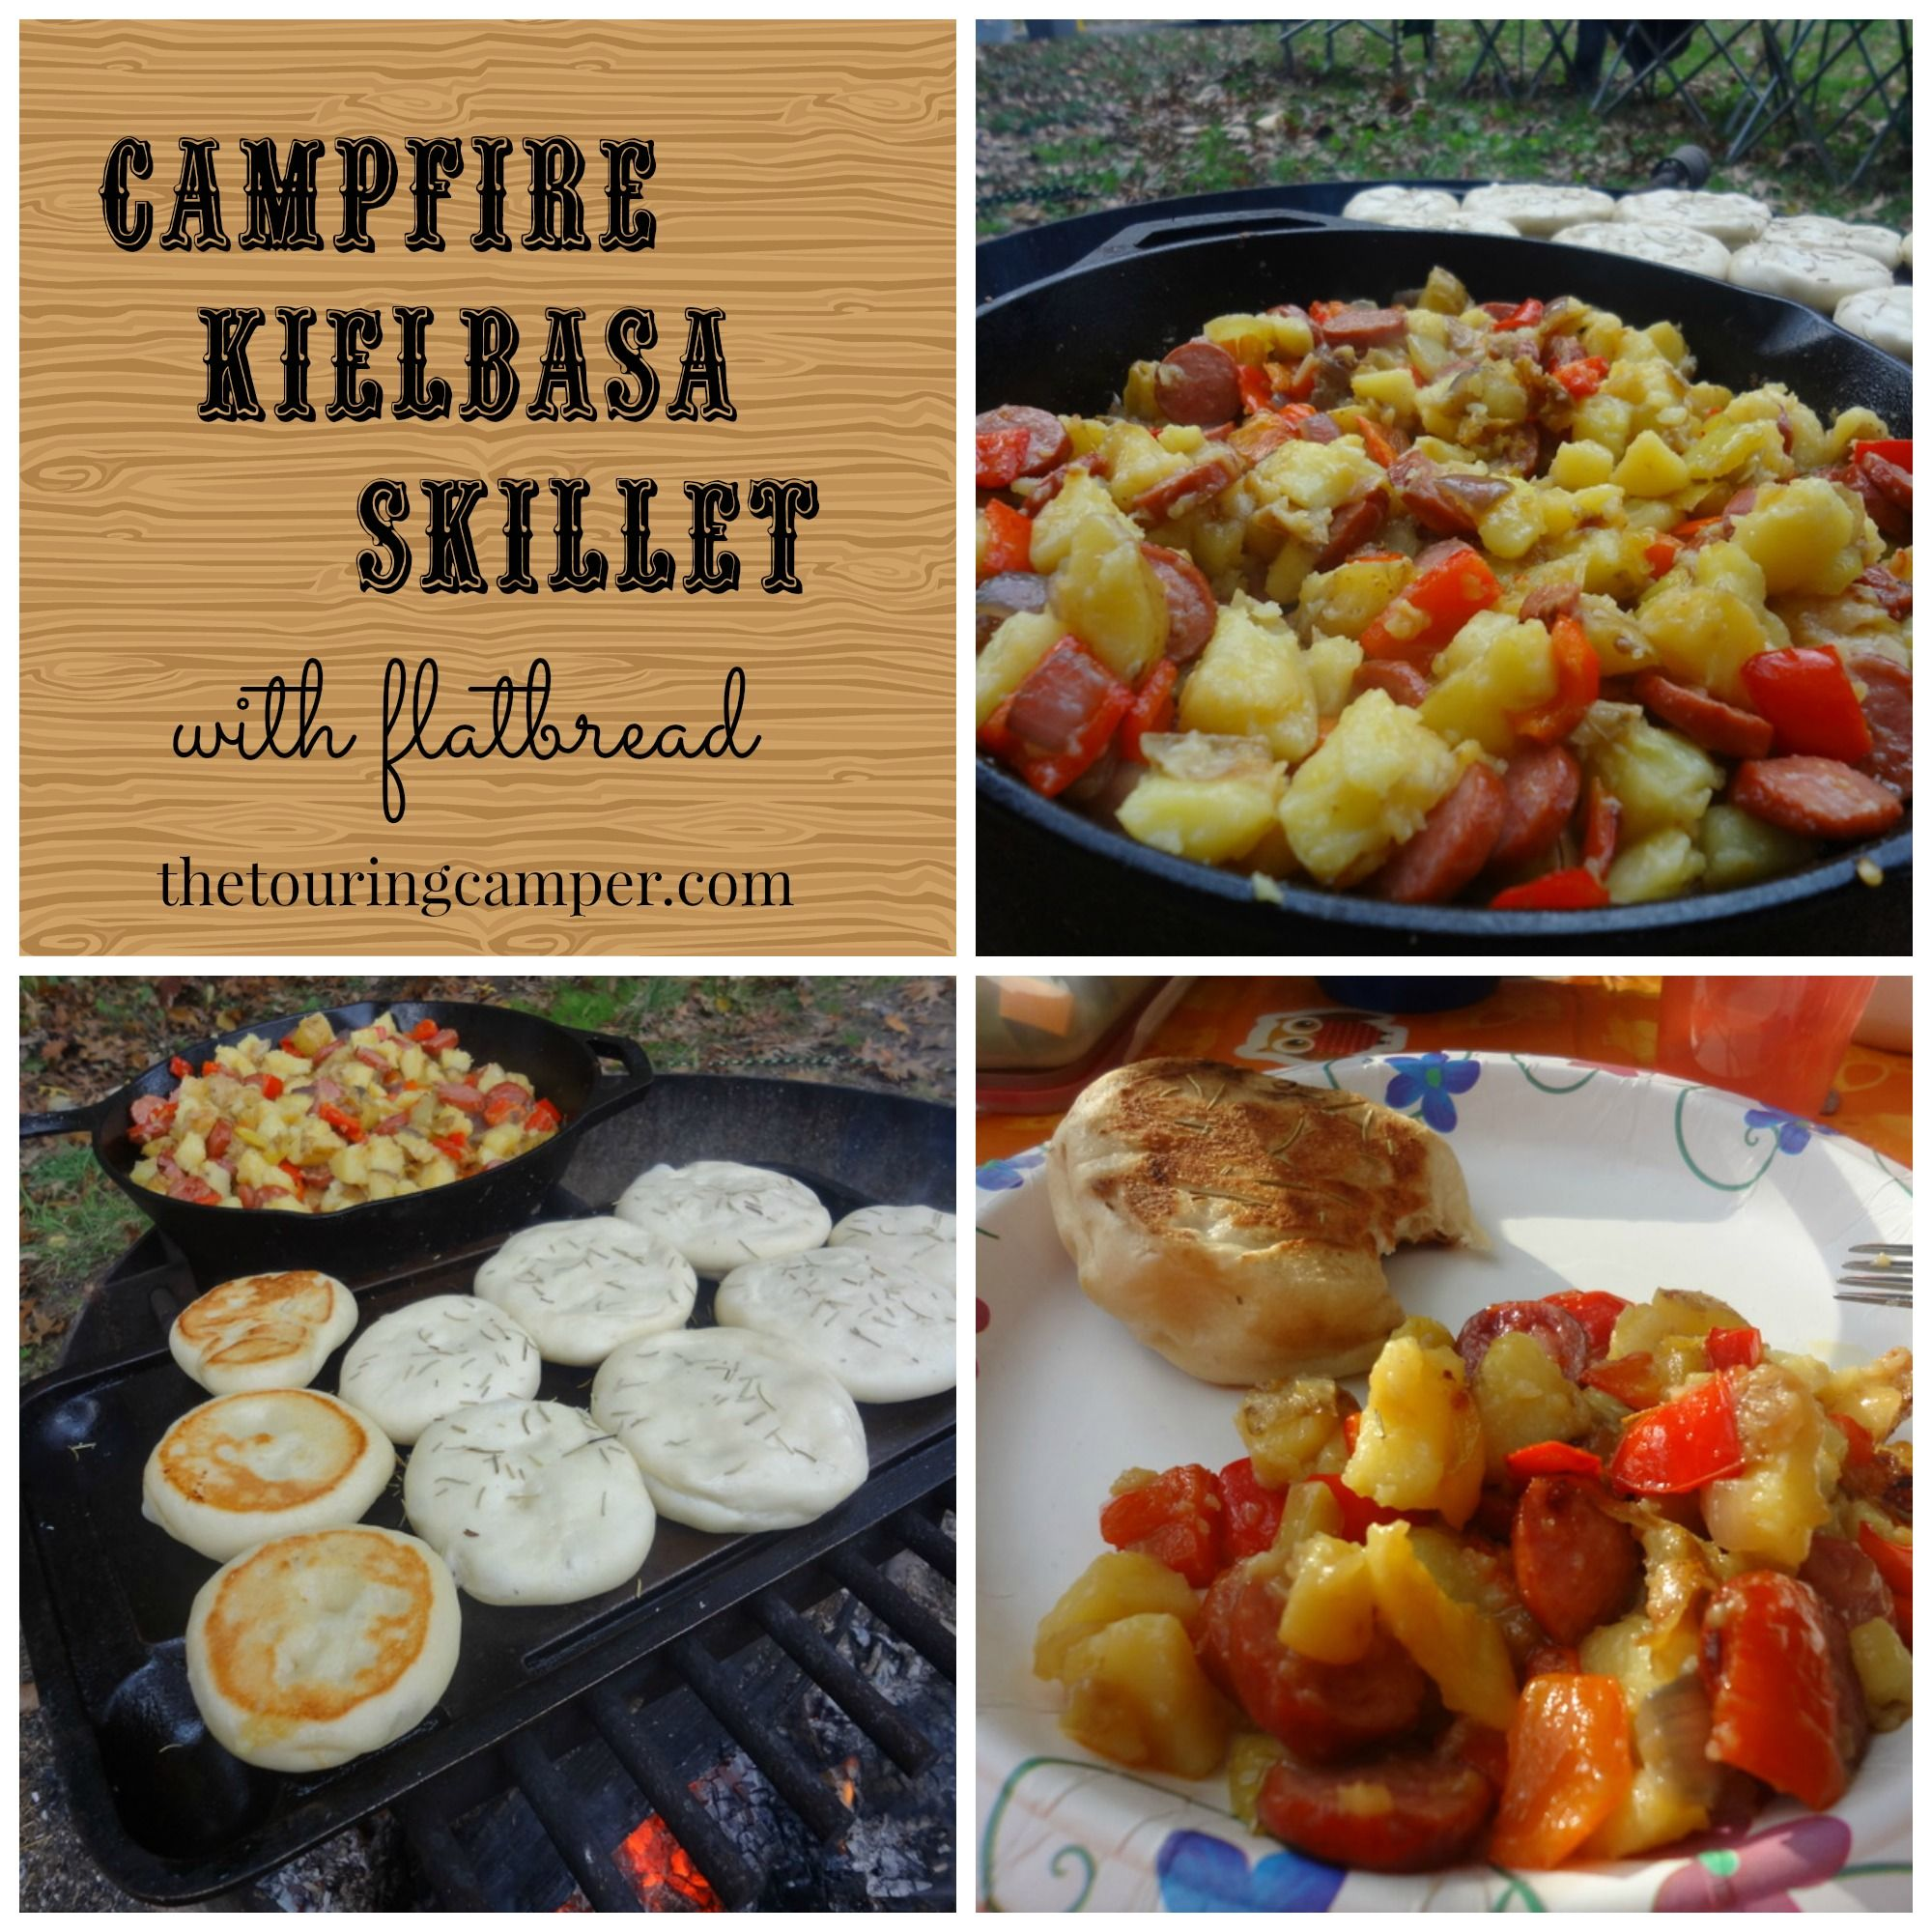 Kids Campfire Cooking And Recipes For Outdoor Cooking For: Campfire Kielbasa Skillet With Flatbread